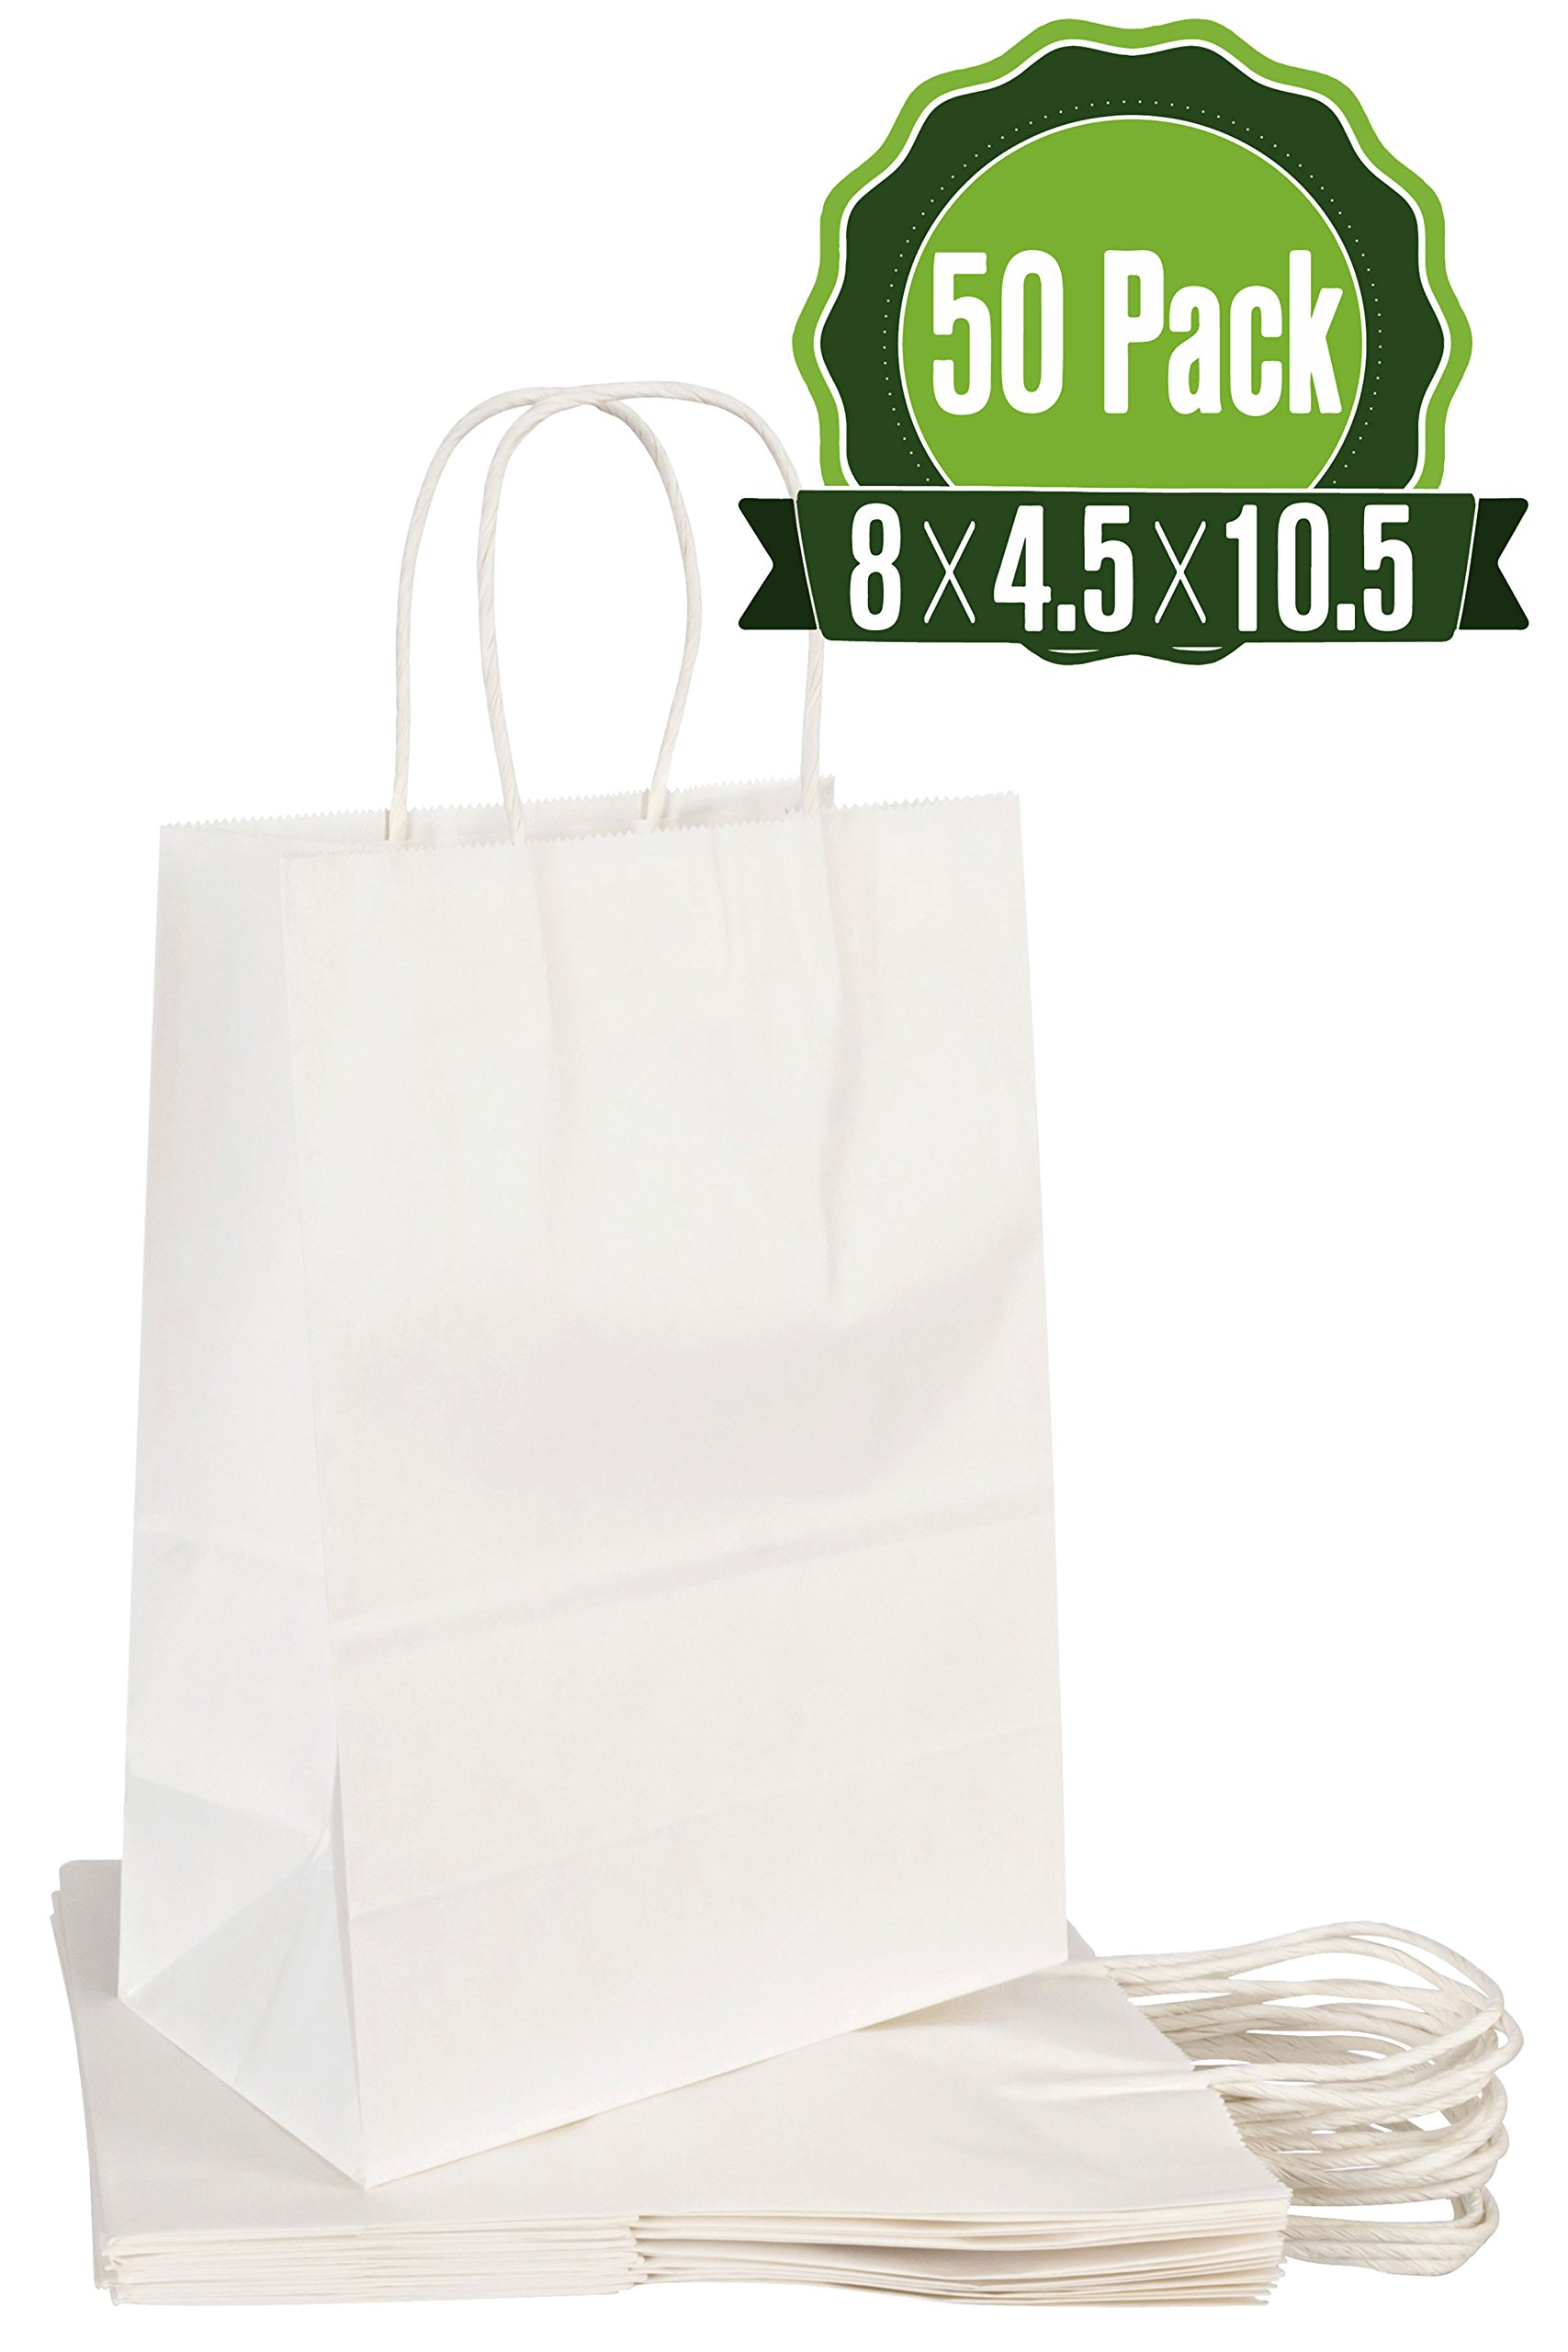 White Kraft Paper Gift Bags with Handles, 50 Pcs 8x4.5x10.5 Shopping, Packaging, Retail, Party, Craft, Gifts, Wedding, Recycled Merchandise Bag